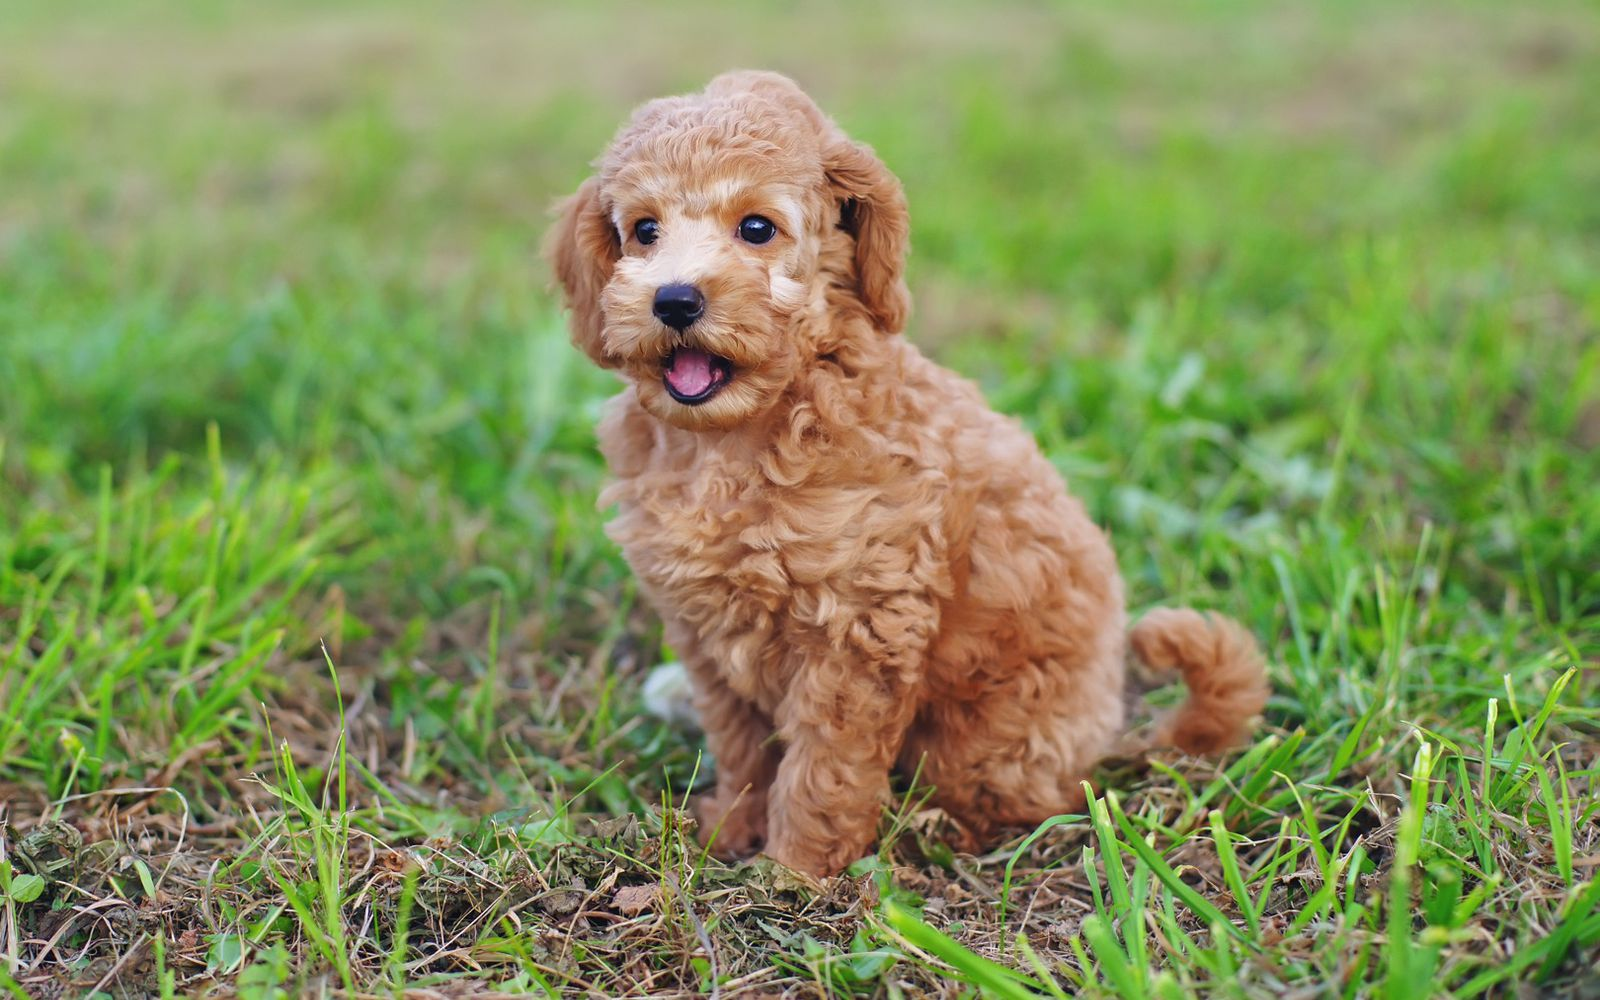 Poodle (Toy) - Puppy